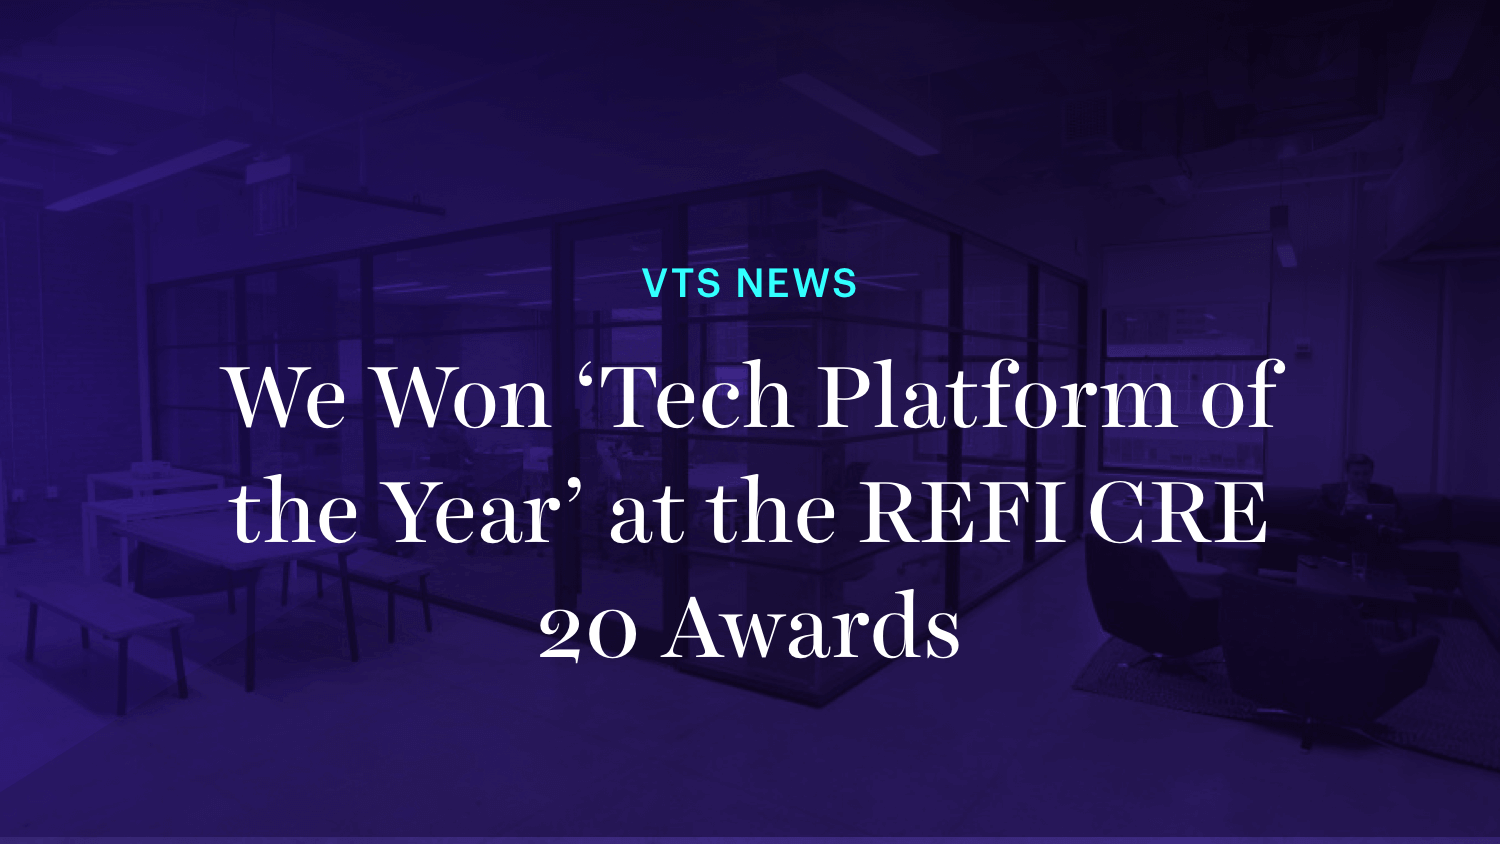 VTS Named CRE's Tech Platform of the Year at the REFI Awards